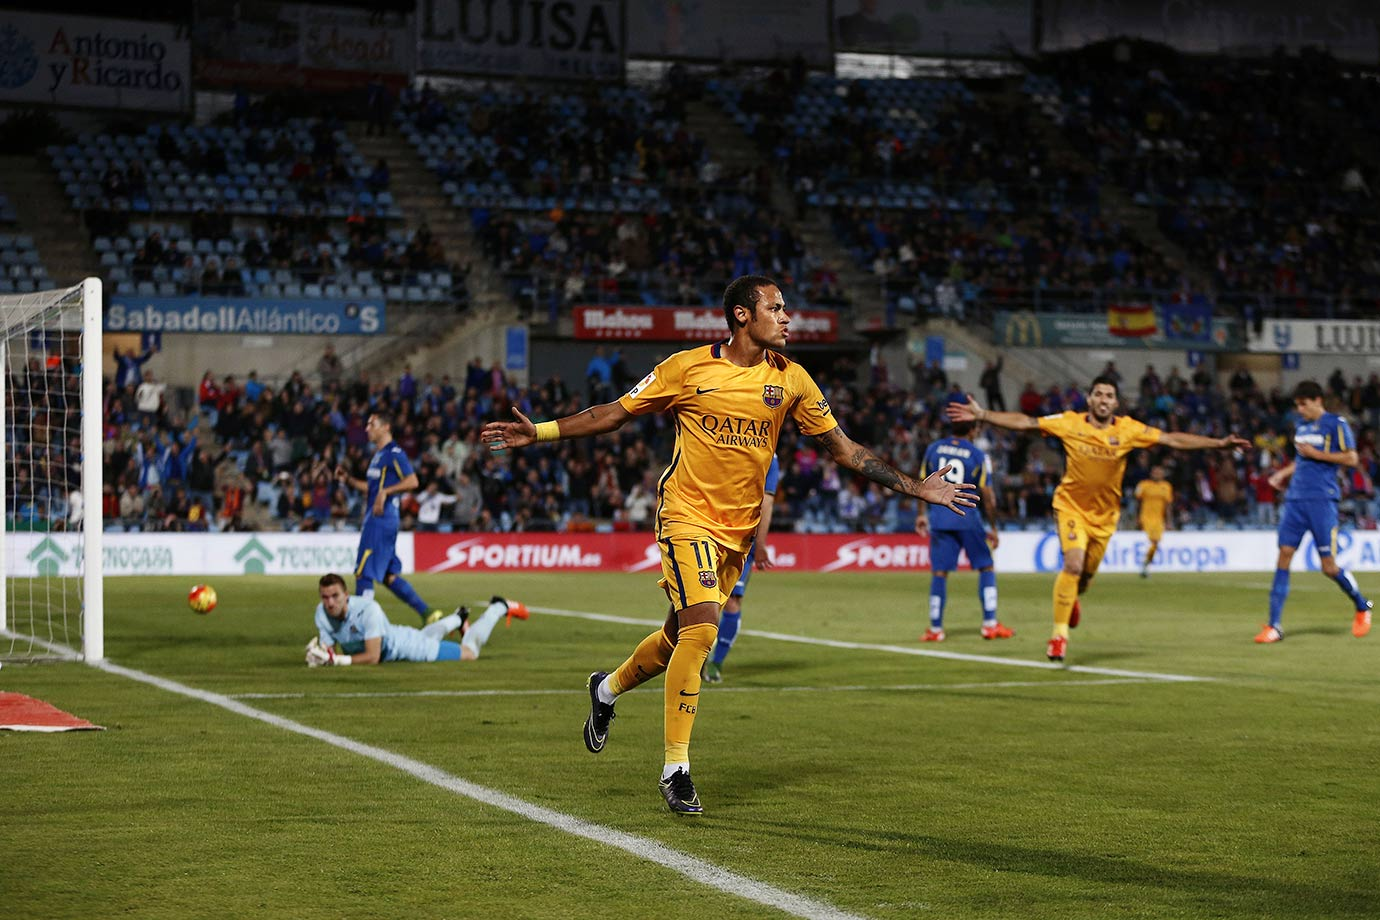 Neymar celebrates after scoring during Barcelona's La Liga match against Getafe on Oct. 31, 2015 at the Coliseum Alfonso Perez in Getafe, Spain.